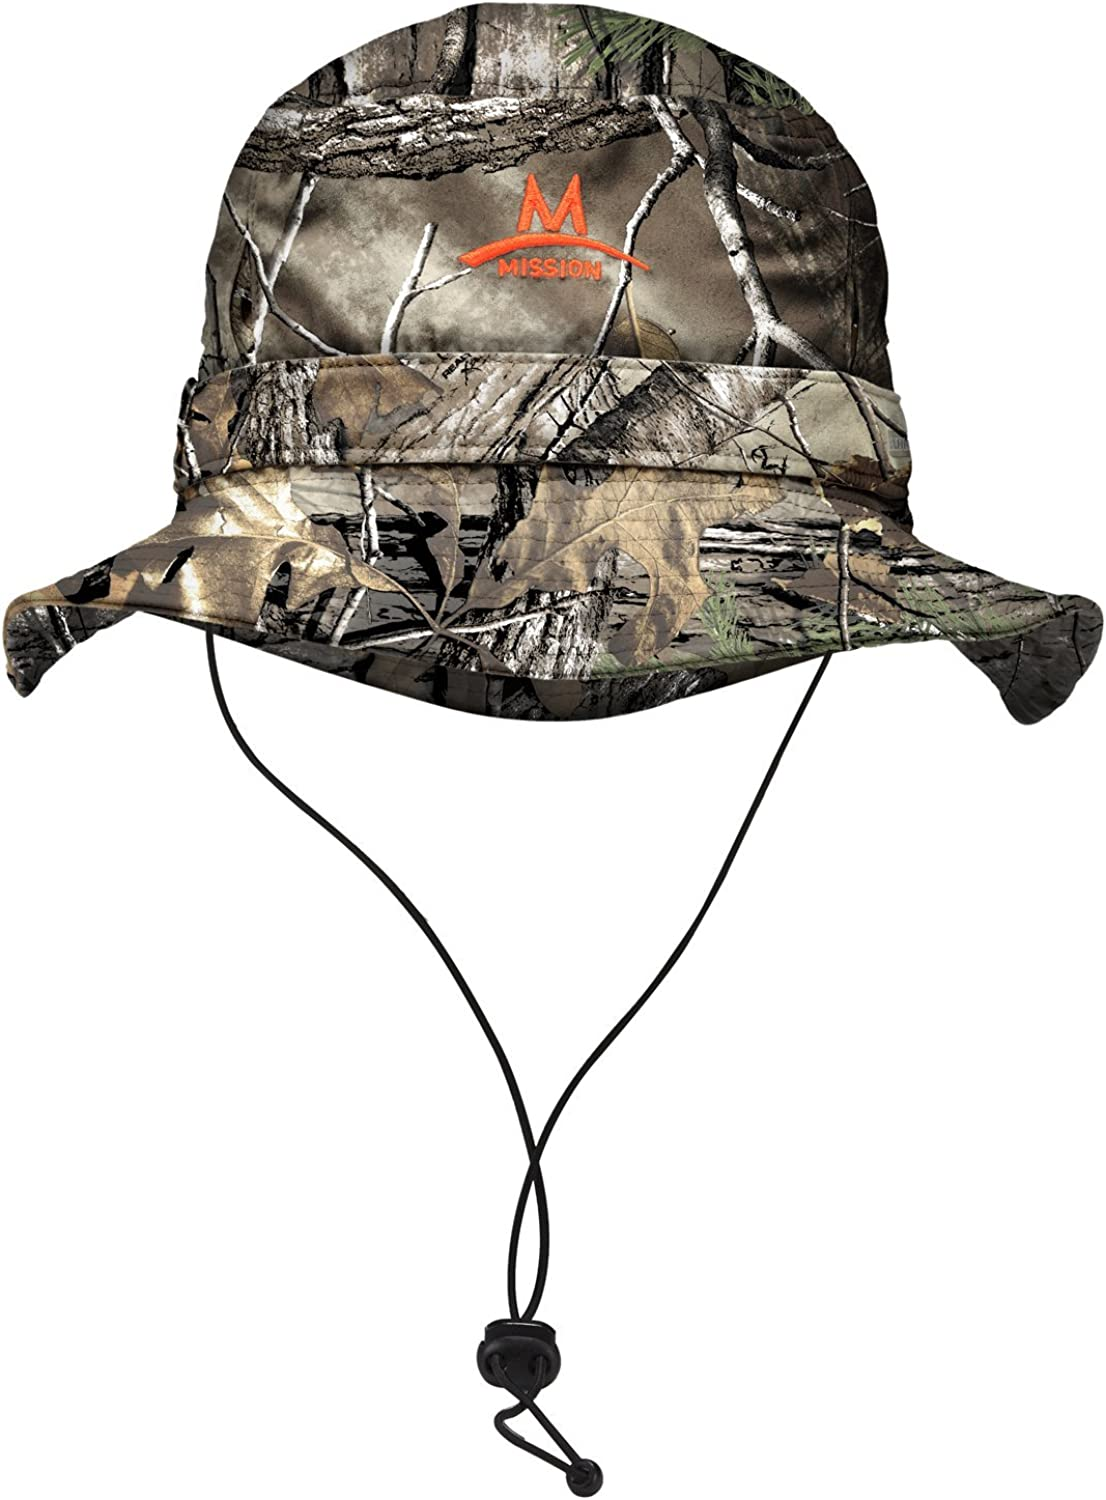 Mission Cooling Bucket Hat, RealTree